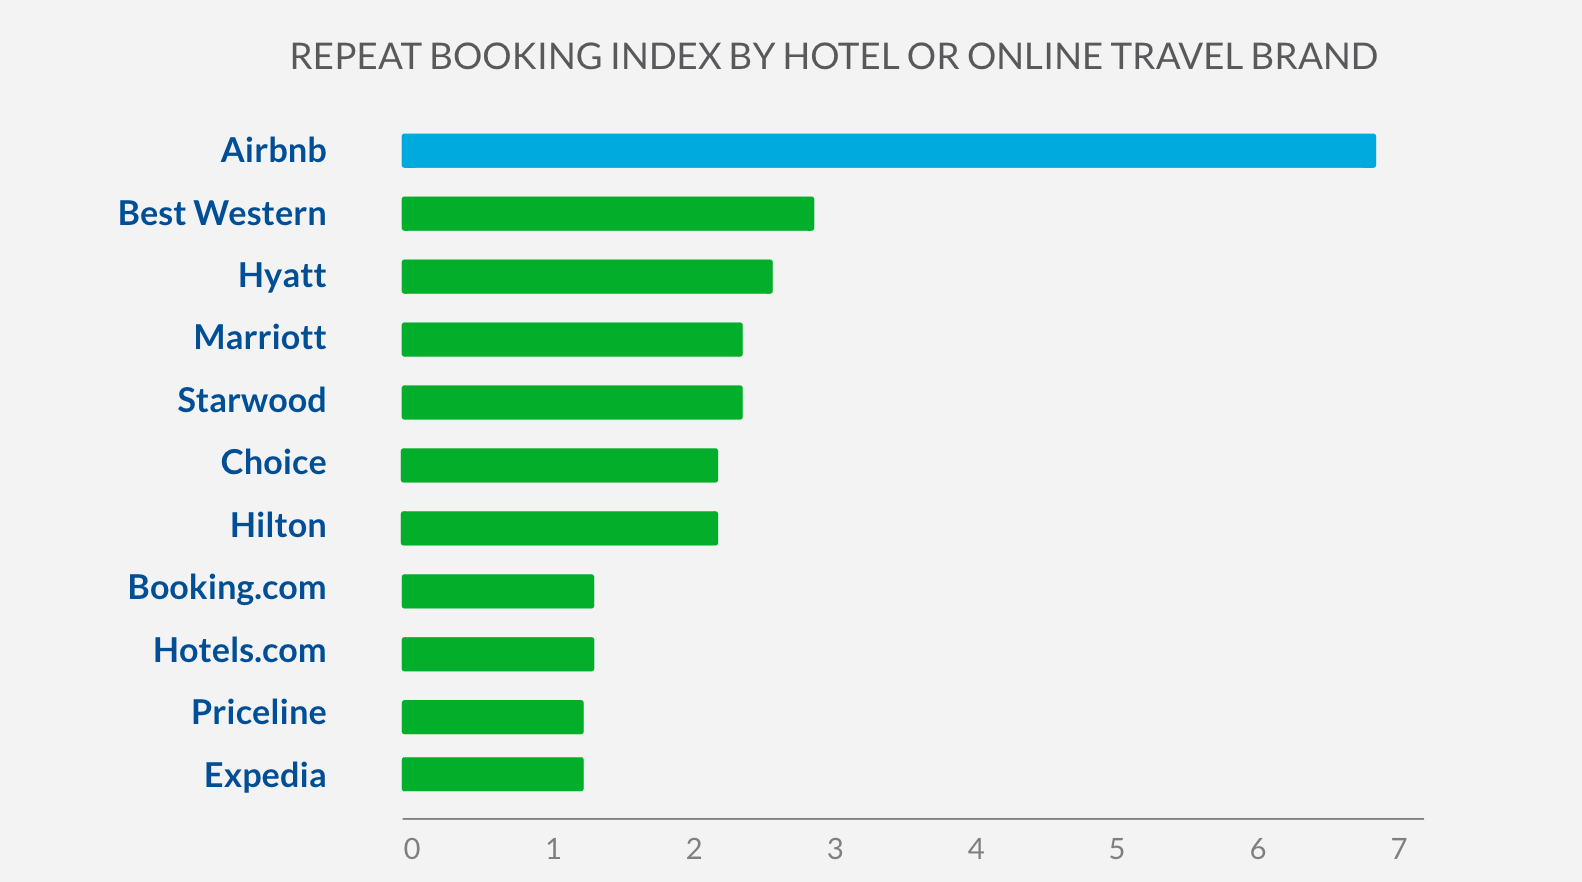 HotelTonight-AirBnb has the potentail to disrupt OTAS and here is why